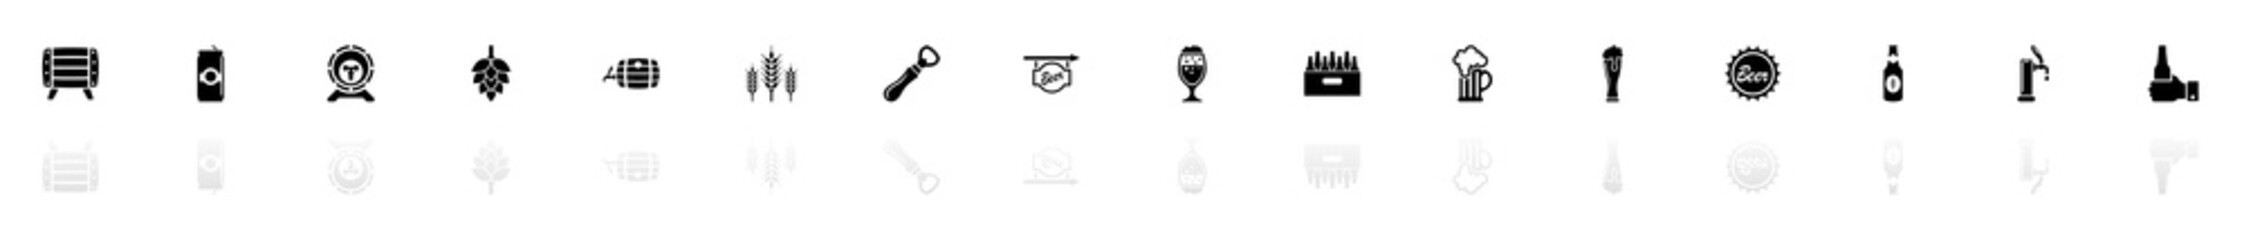 Beer icons - Black horizontal Illustration symbol on White Background with a mirror Shadow reflection. Flat Vector Icon.